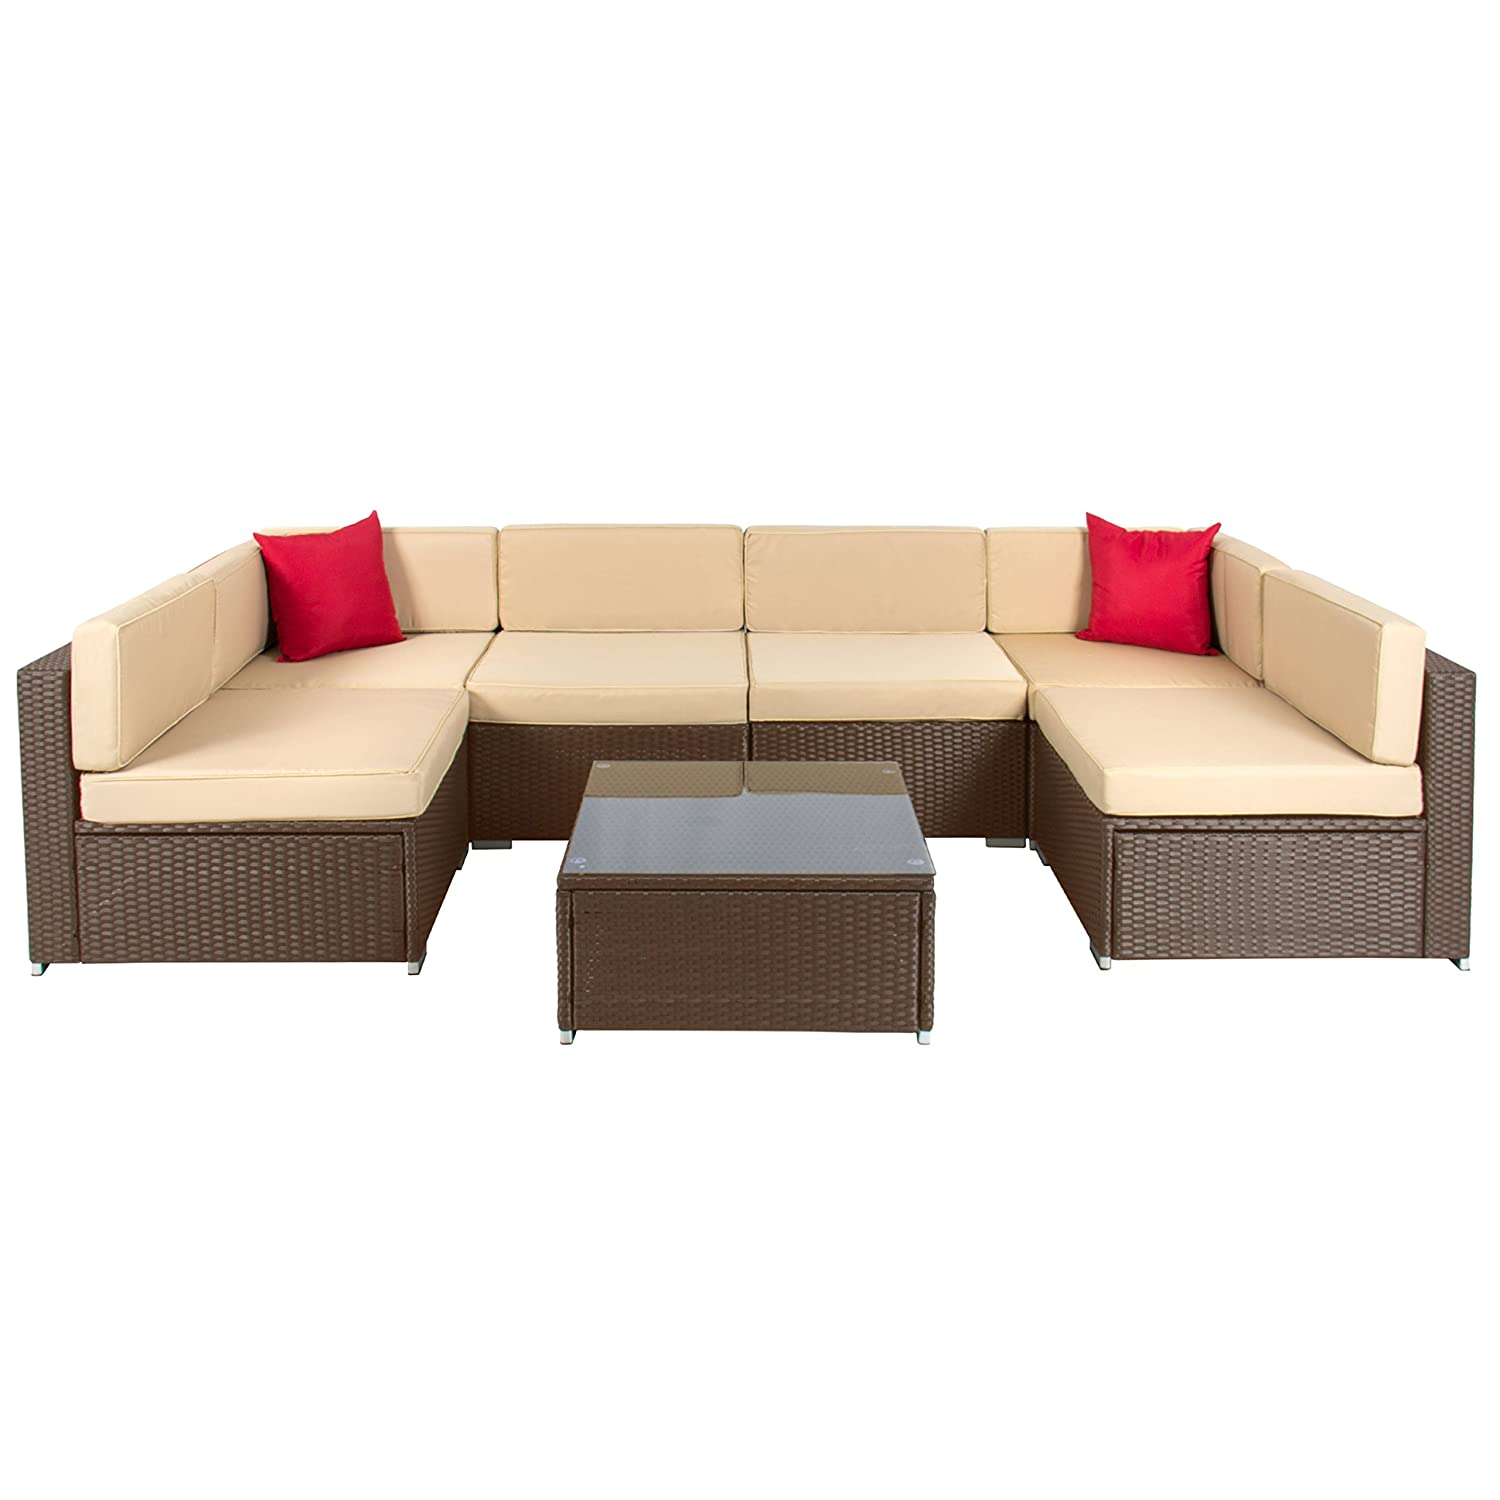 amazoncom best choice products 7pc furniture sectional pe wicker rattan sofa set deck couch brown garden outdoor